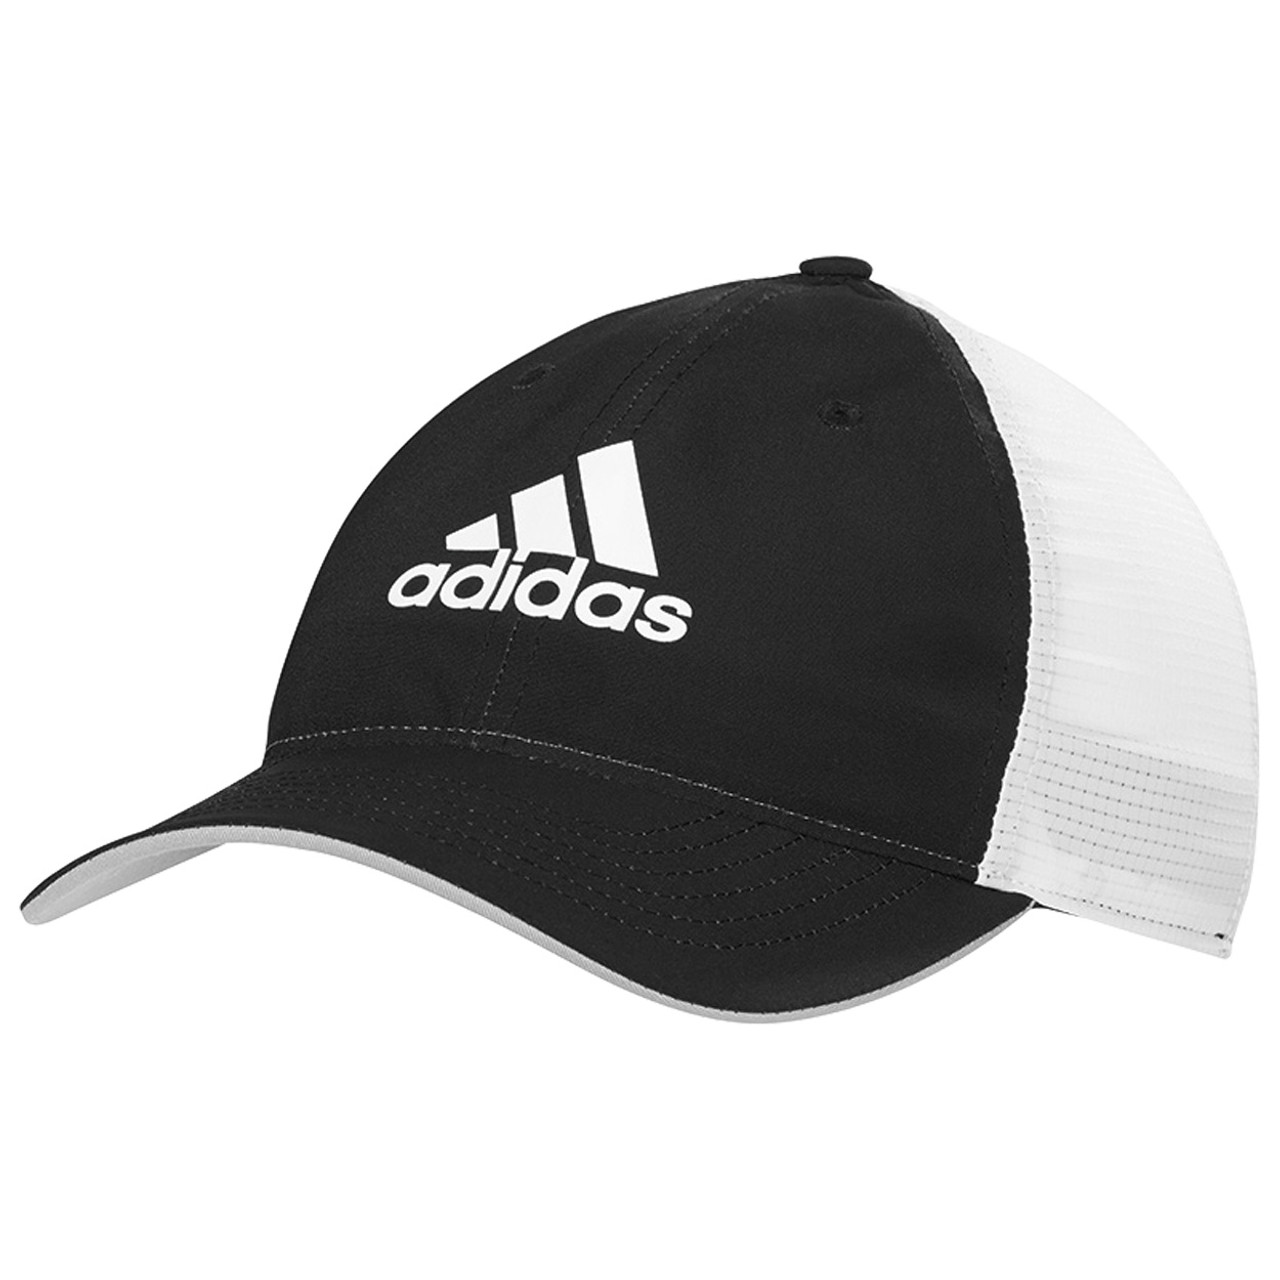 efc54f65d Adidas ClimaCool Flex Fit Golf Hat